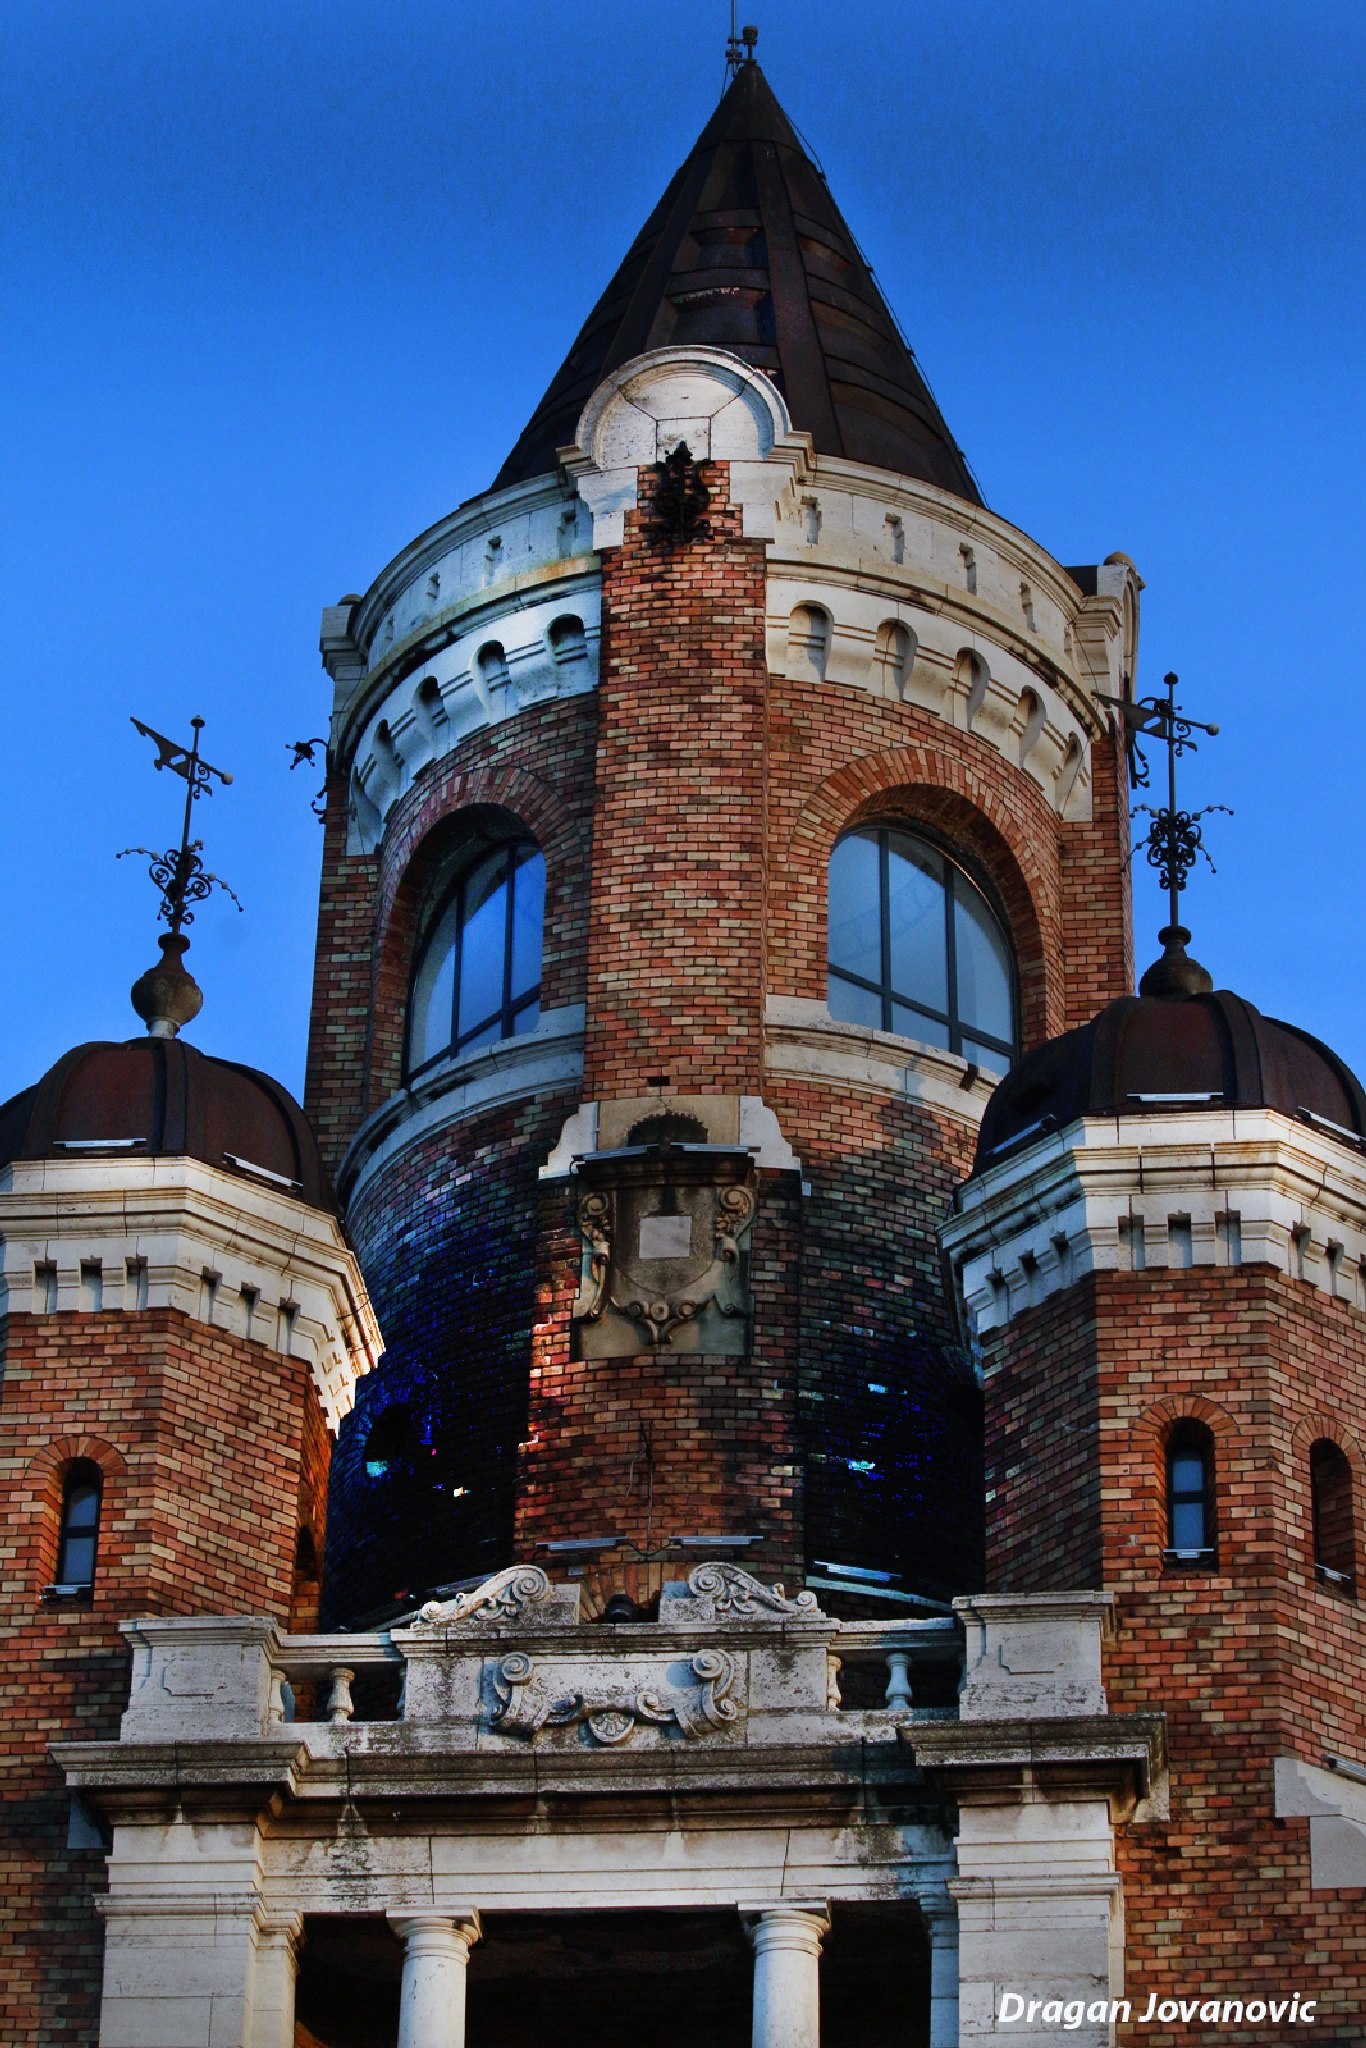 TOWER IN OLD PART ON BELGRADE - SERBIA by espanol1950